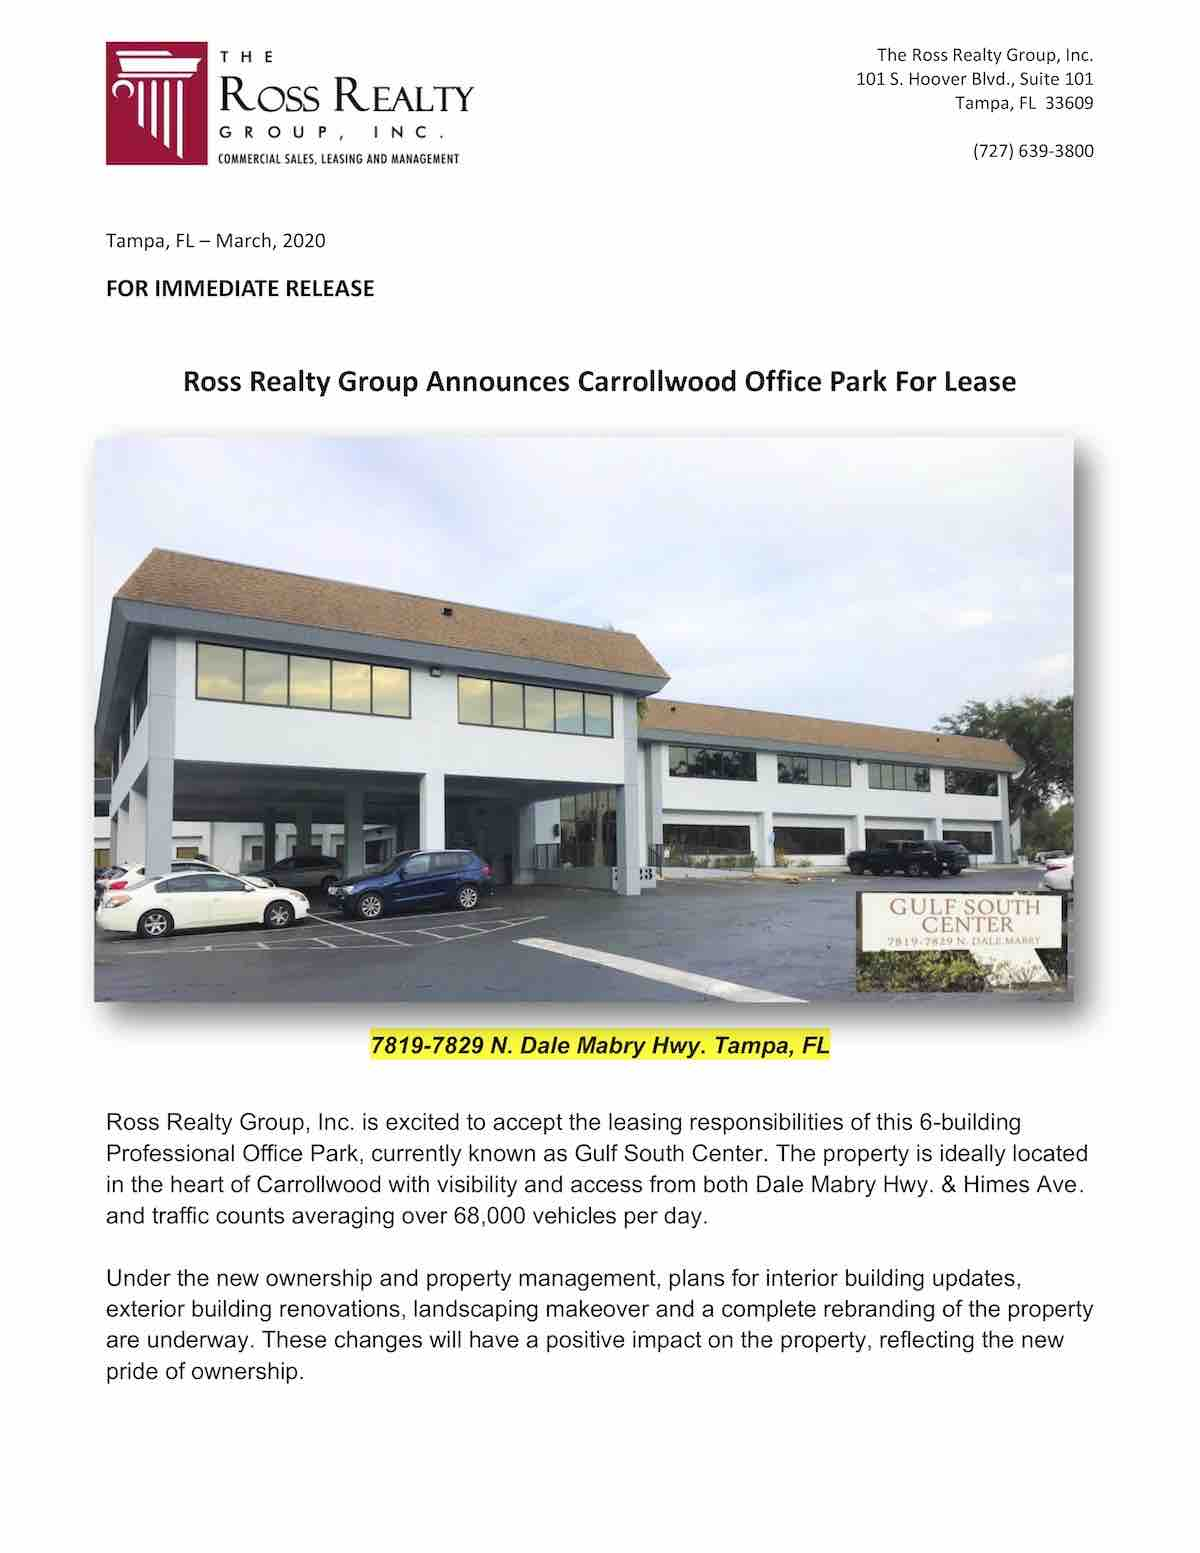 Tampa Commercial Real Estate - PR-20200302-RRG-NewListing-PR-Gulf South Center P1